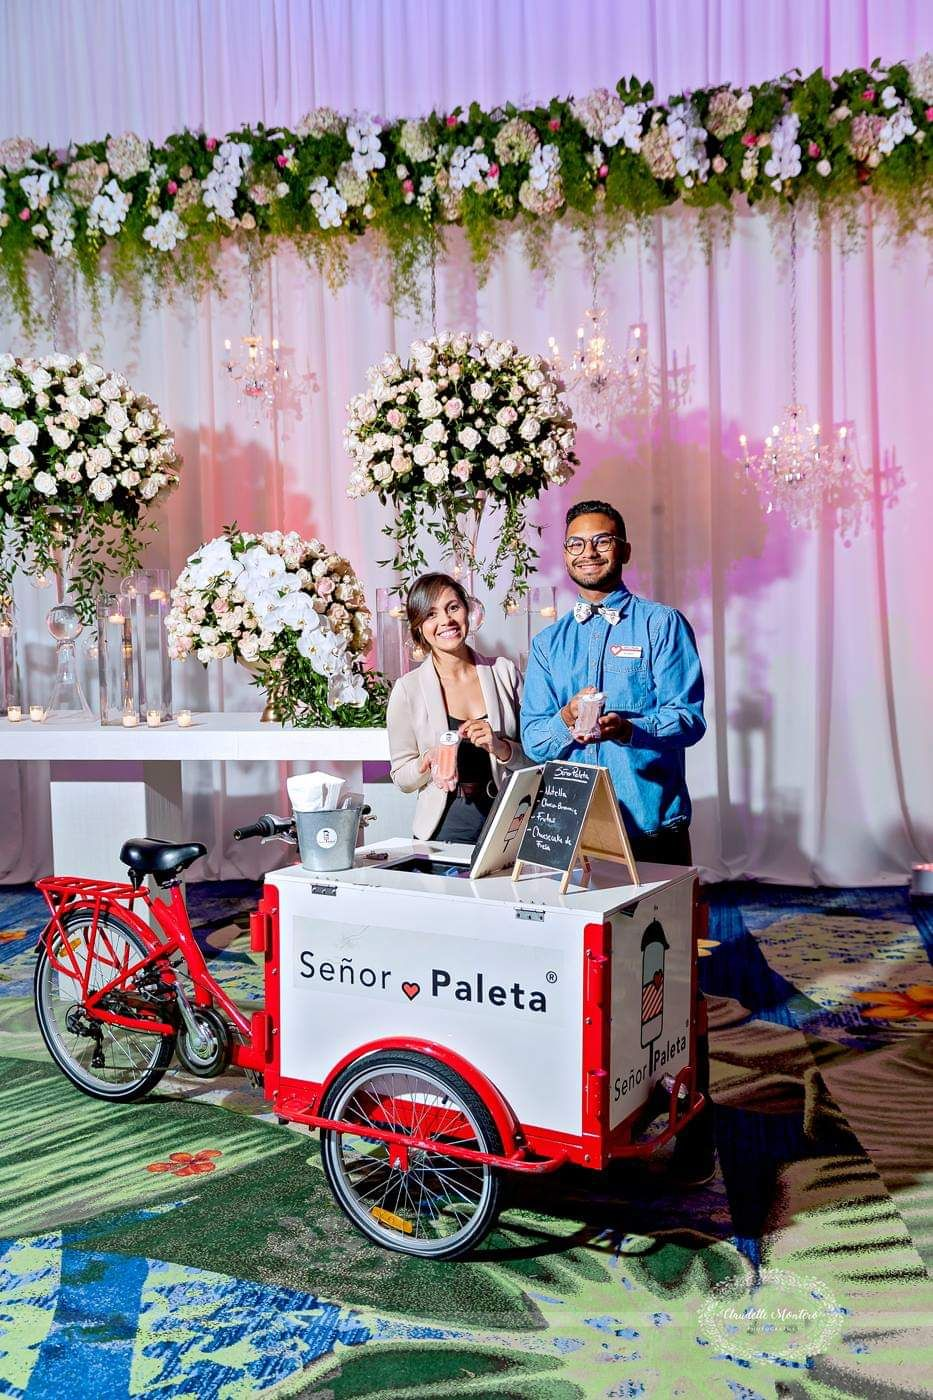 Caribbean's #1 Paletas Company Announces Launch of Events Division in U.S.